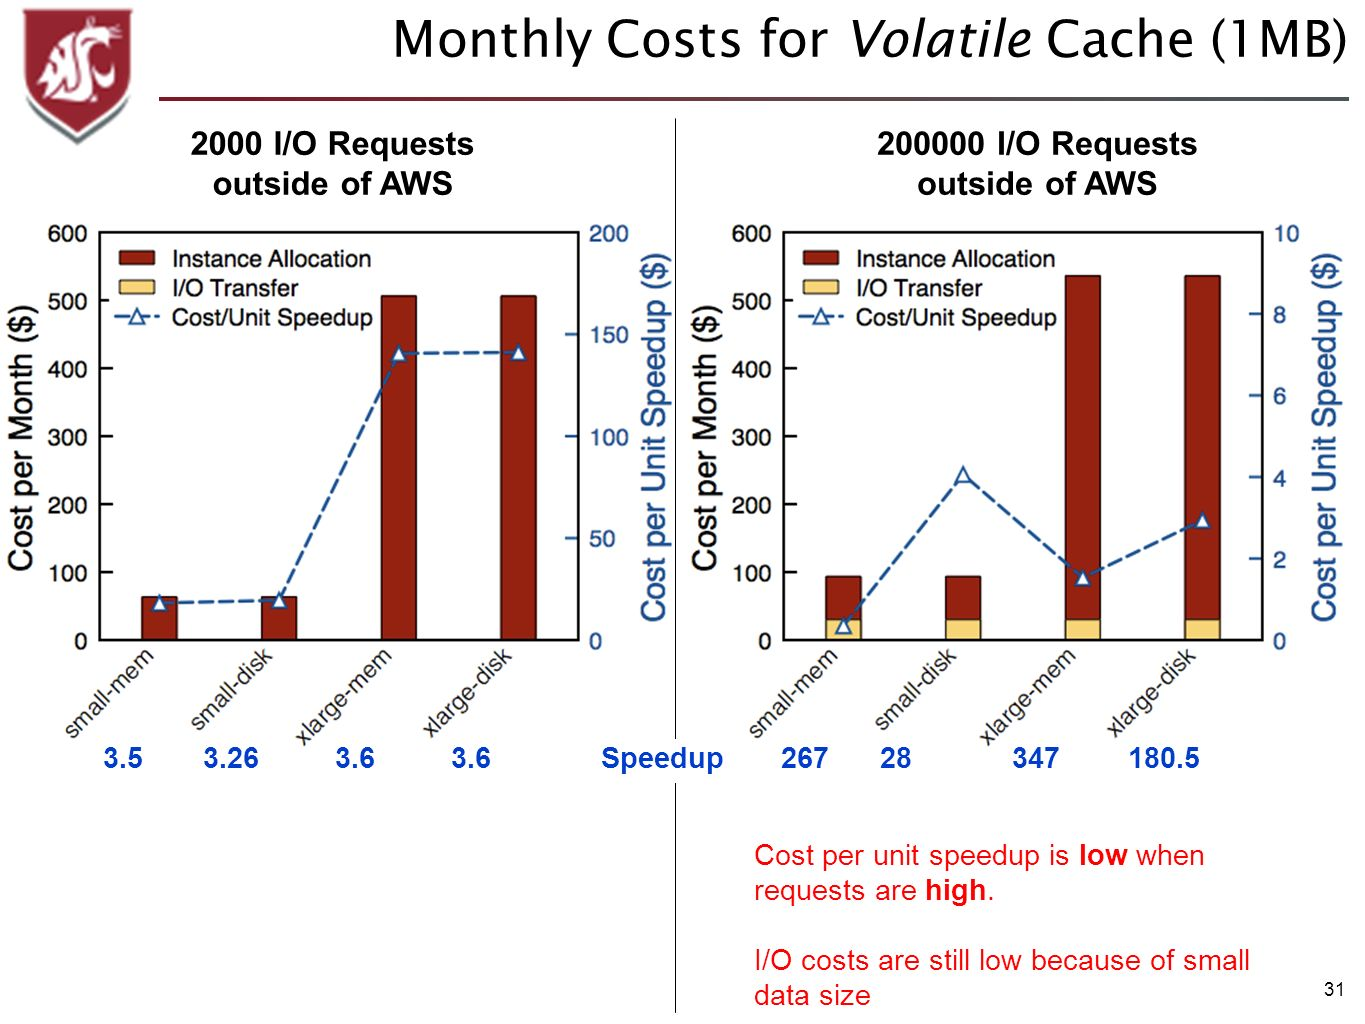 31 Monthly Costs for Volatile Cache (1MB) 200000 I/O Requests outside of AWS 2000 I/O Requests outside of AWS Cost per unit speedup is low when reques